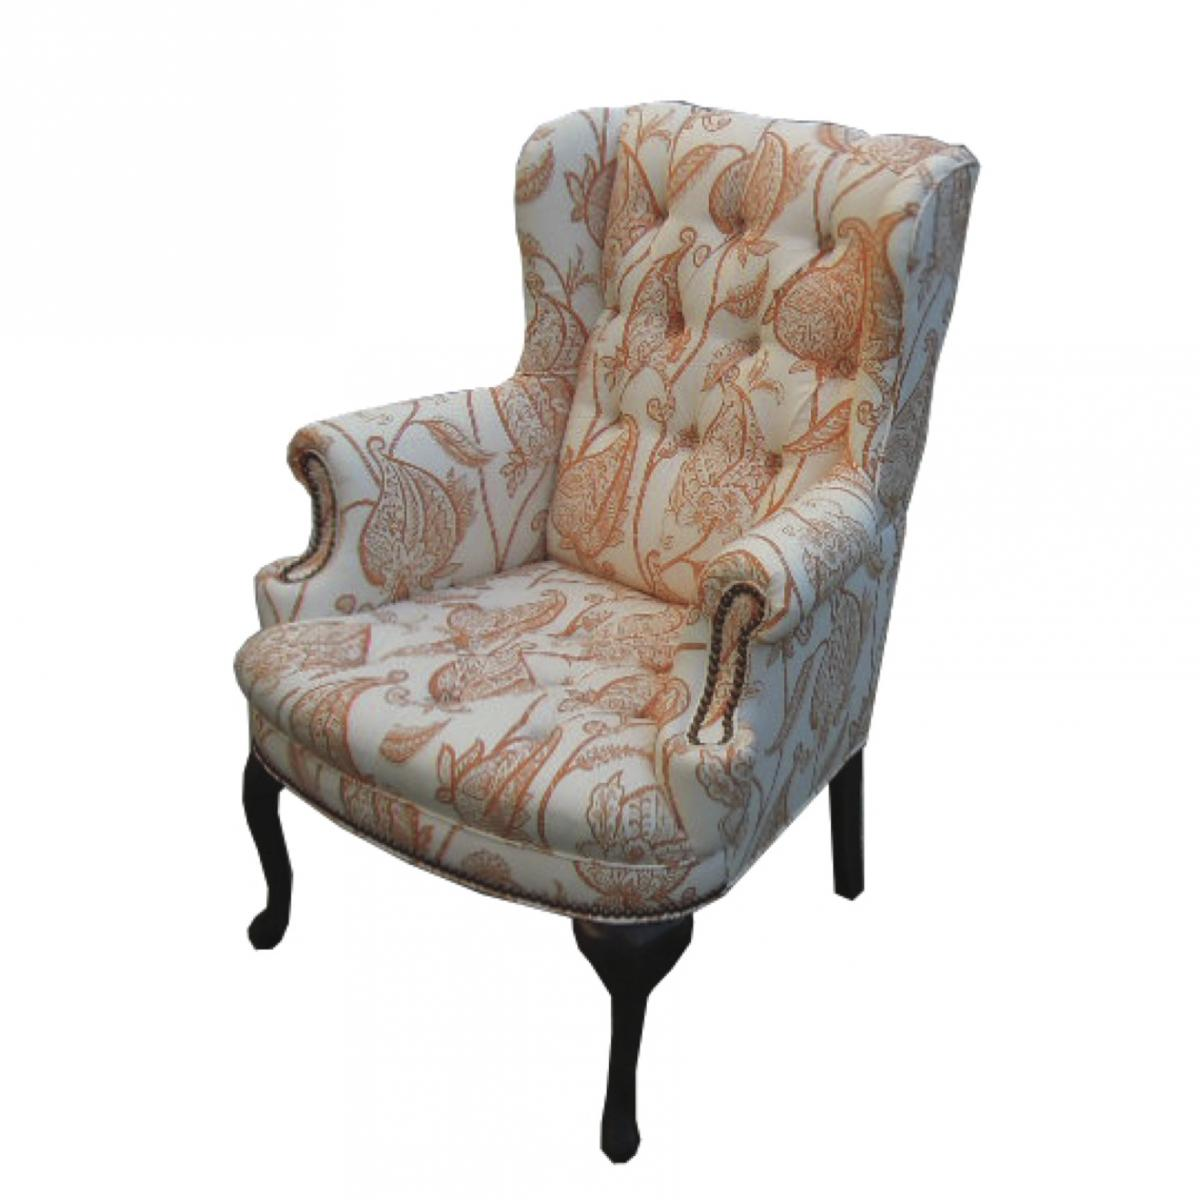 Reupholstered wing chair with tufting in white and orange fabric